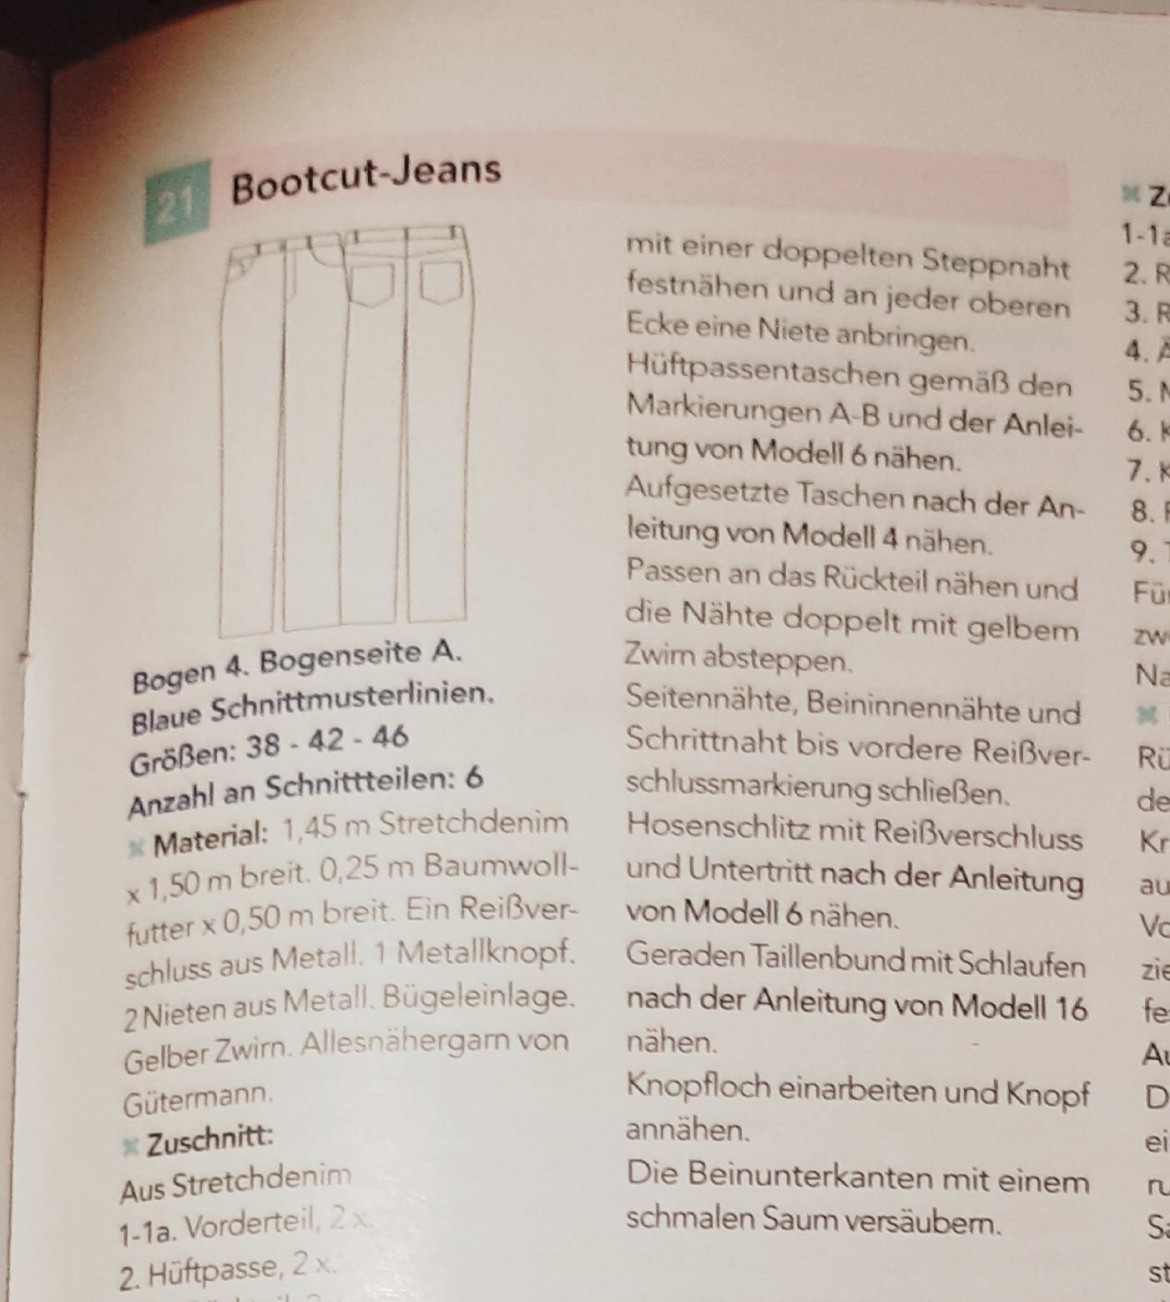 burda style Nutzerkreation beaxs Jeans & Co.